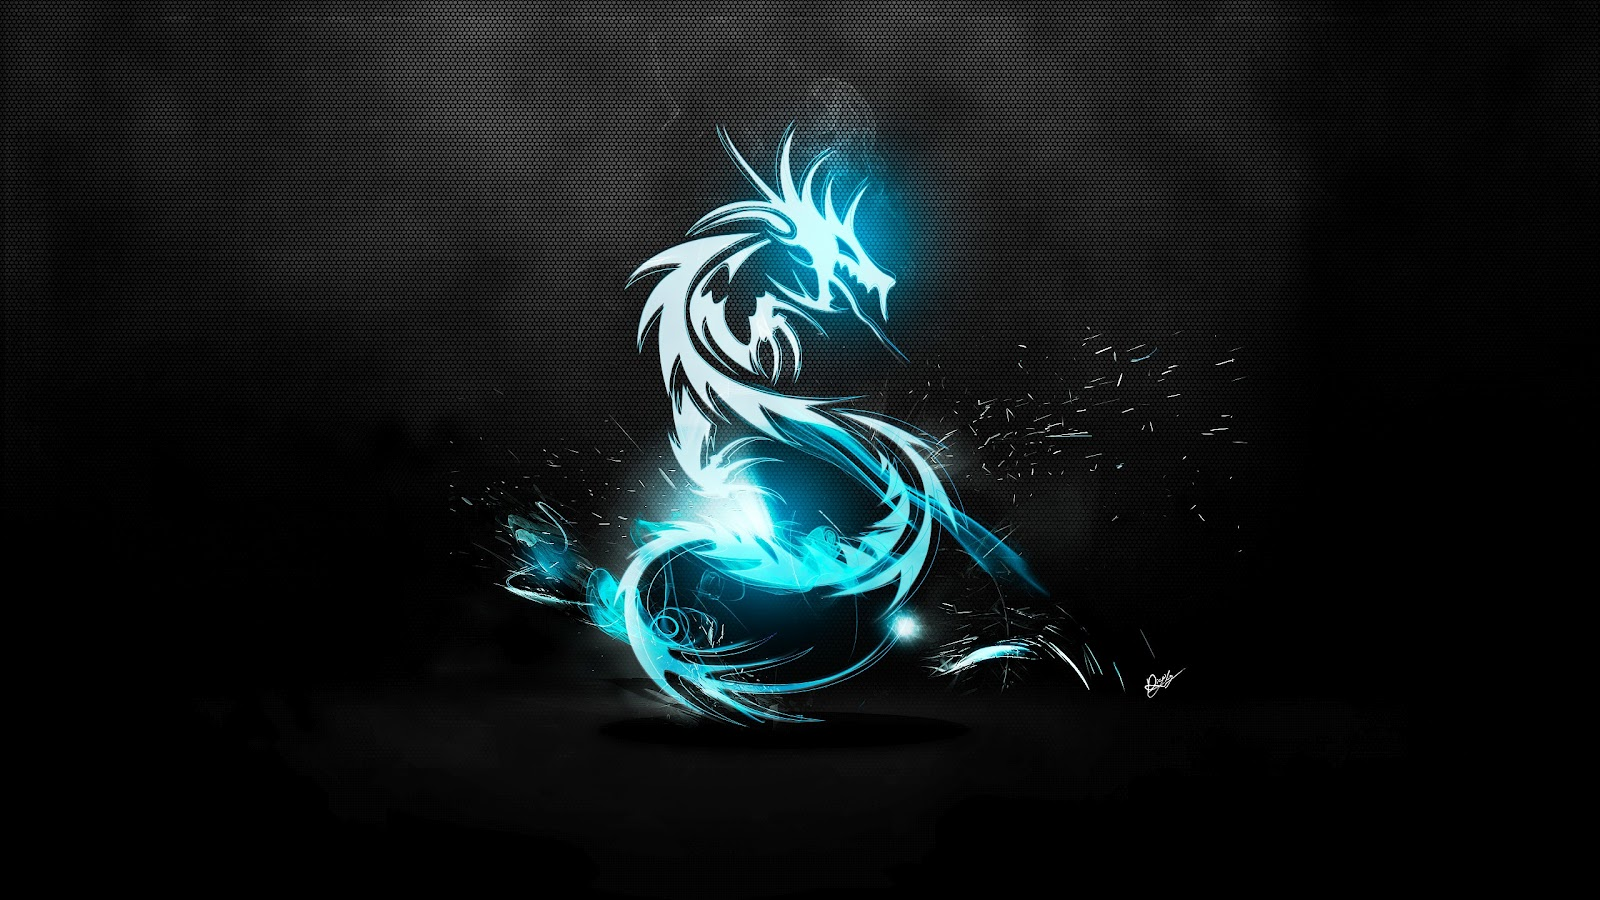 Neon Wallpapers for Android - Blue Neon Dragon Wallpaper